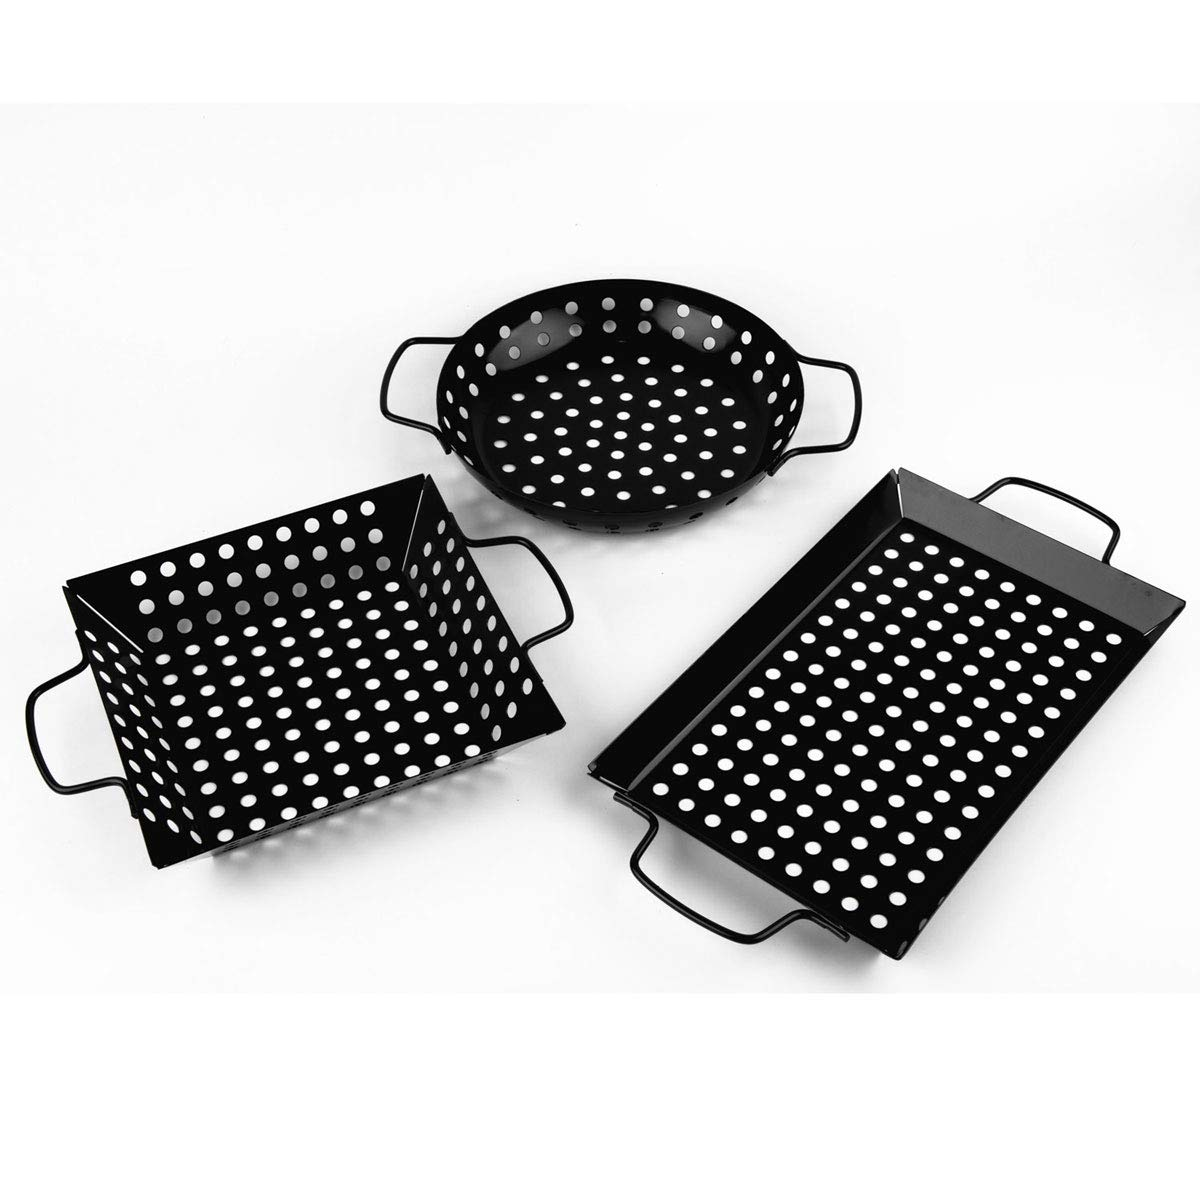 waykea Non-Stick Grill Basket Set, 3-Piece BBQ Accessory Set Wok Pan Grill Vegetable by waykea